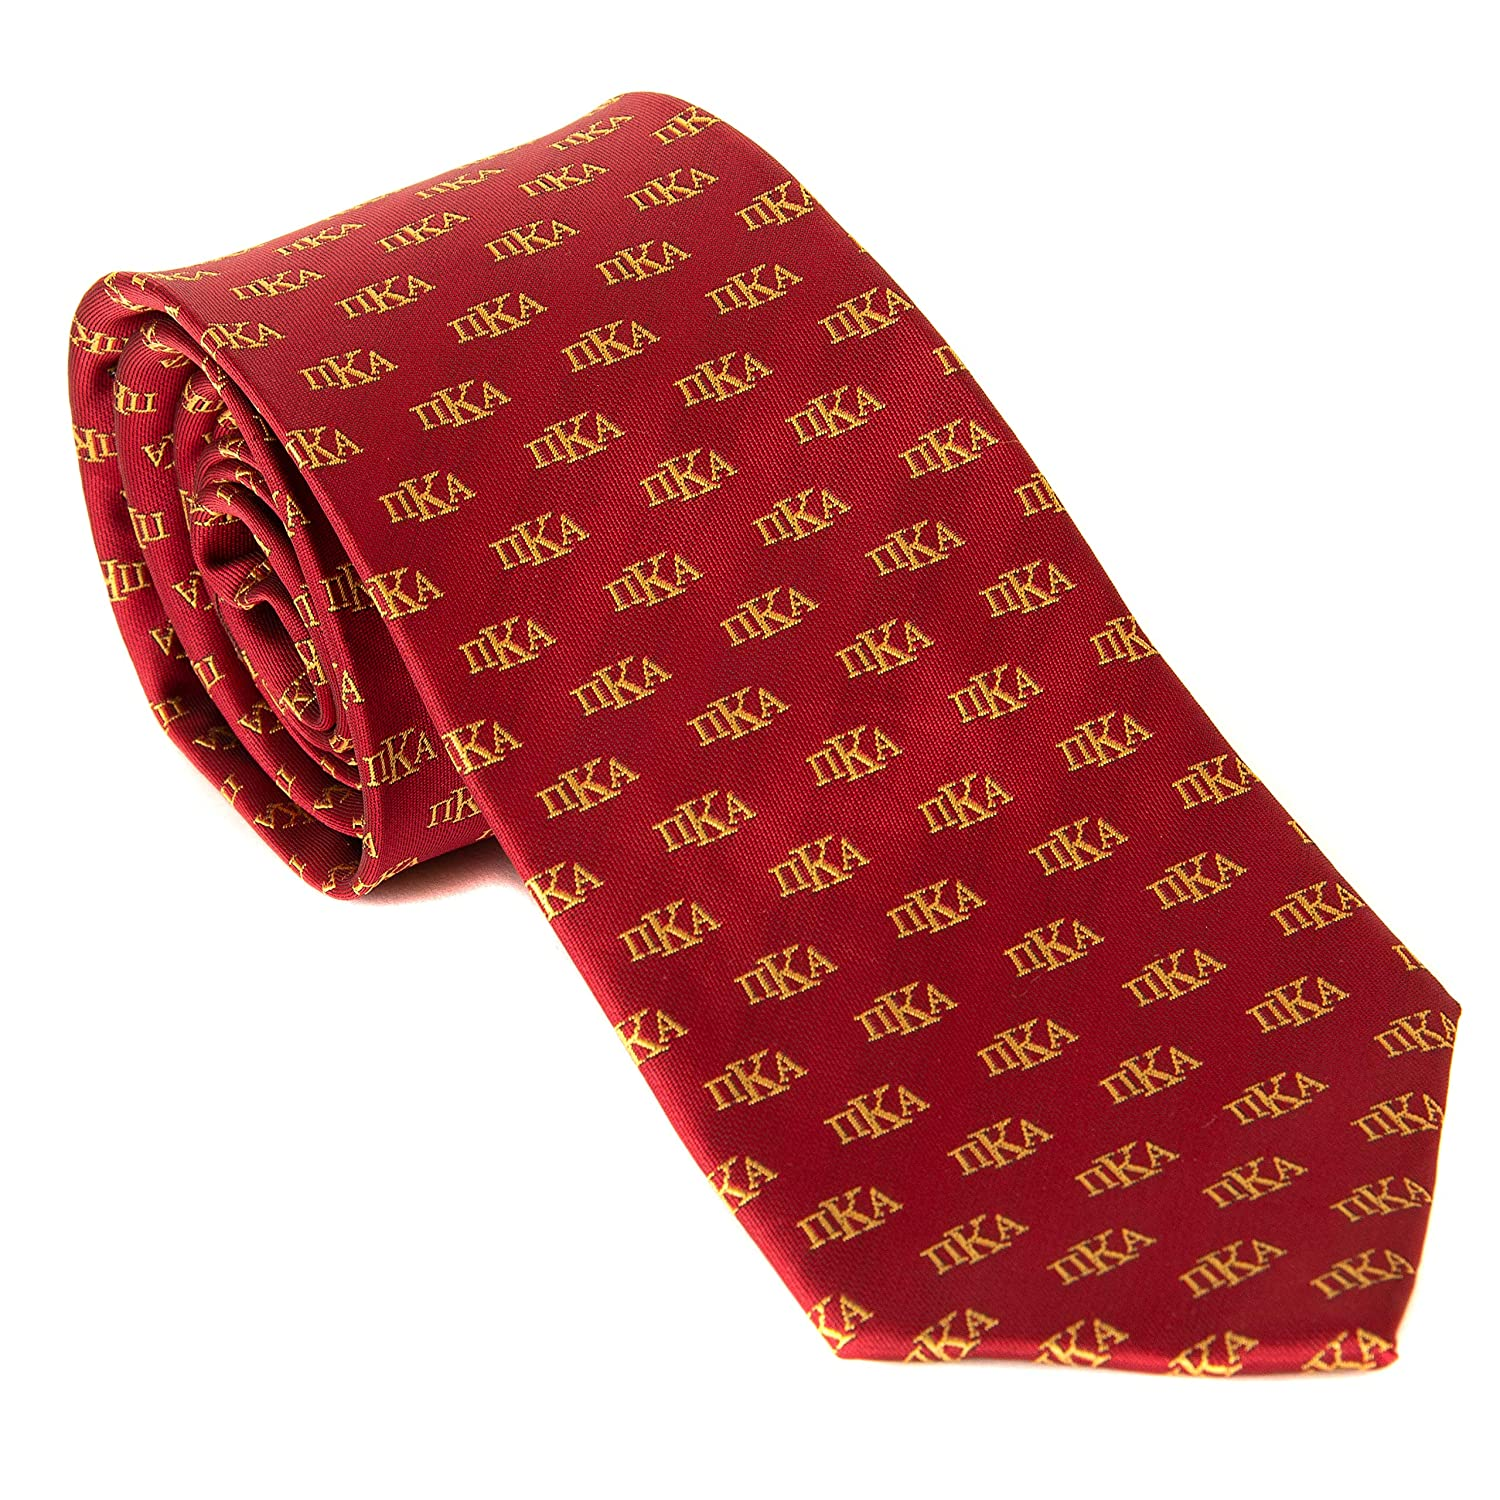 Pi Kappa Alpha Fraternity Necktie Tie Greek Formal Occasion Standard Length Width Hanky Pocket Square pike